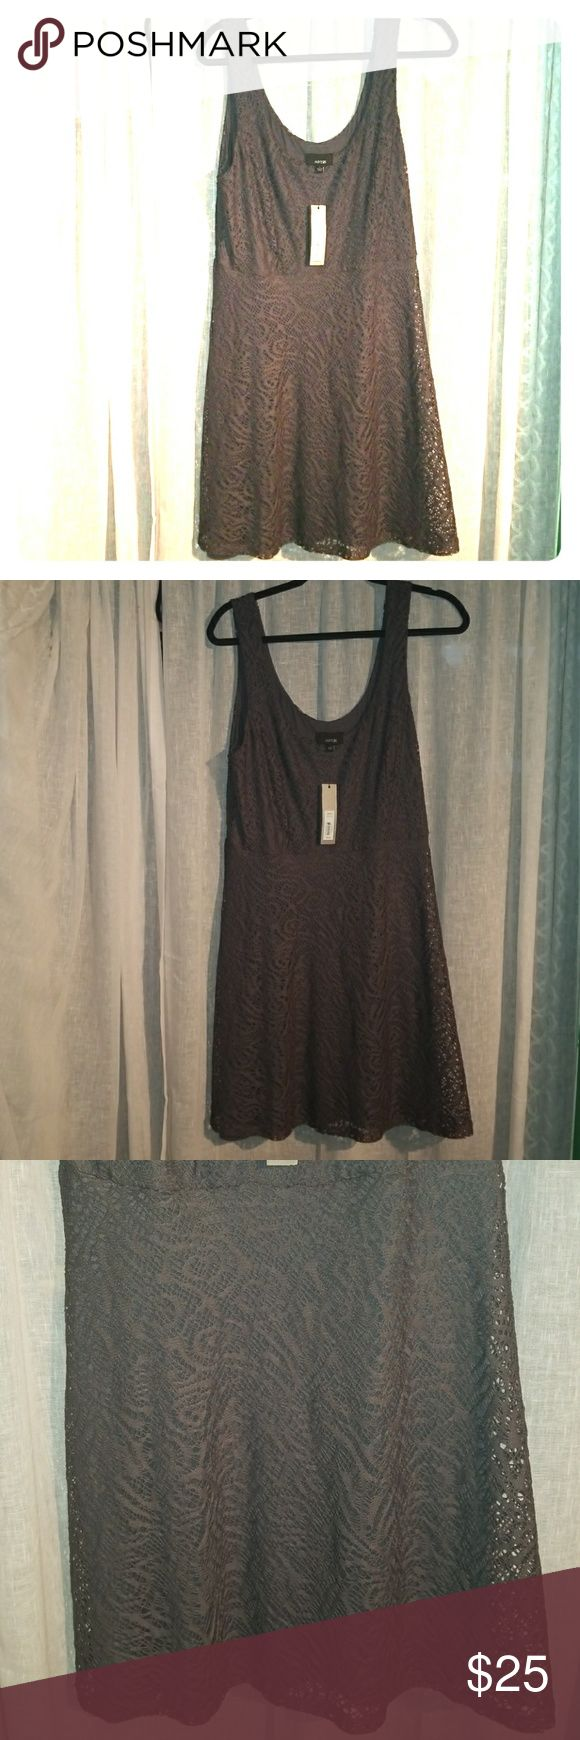 Apt. 9 lace dress NWT New with tags ! Dark gray lace dress   Size Large   Has lining underneath : 97% rayon  3% spandex.  Body: 96% polyester  4% spandex   Fitted tank top like topo.  Bottom flavors open  At 5'8 this dress hits about 2 inches above the knee Apt. 9 Dresses